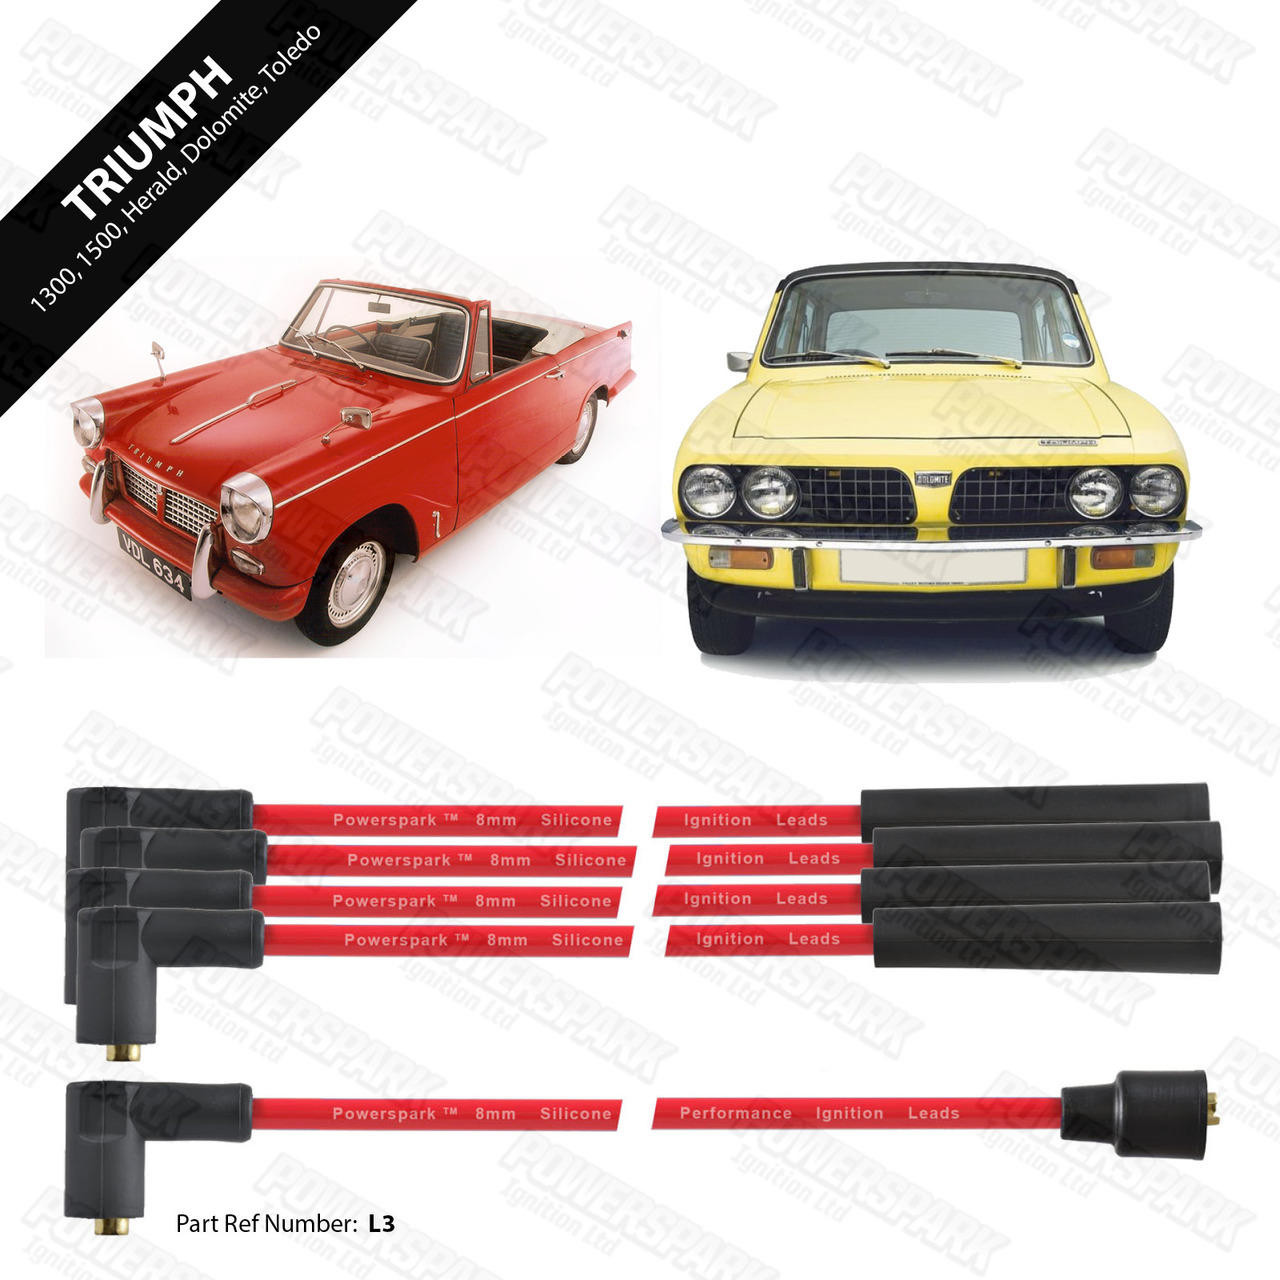 Powerspark Triumph 1300, 1500, Dolomite, Herald, Spitfire, Toledo HT Leads 8mm Double Silicone